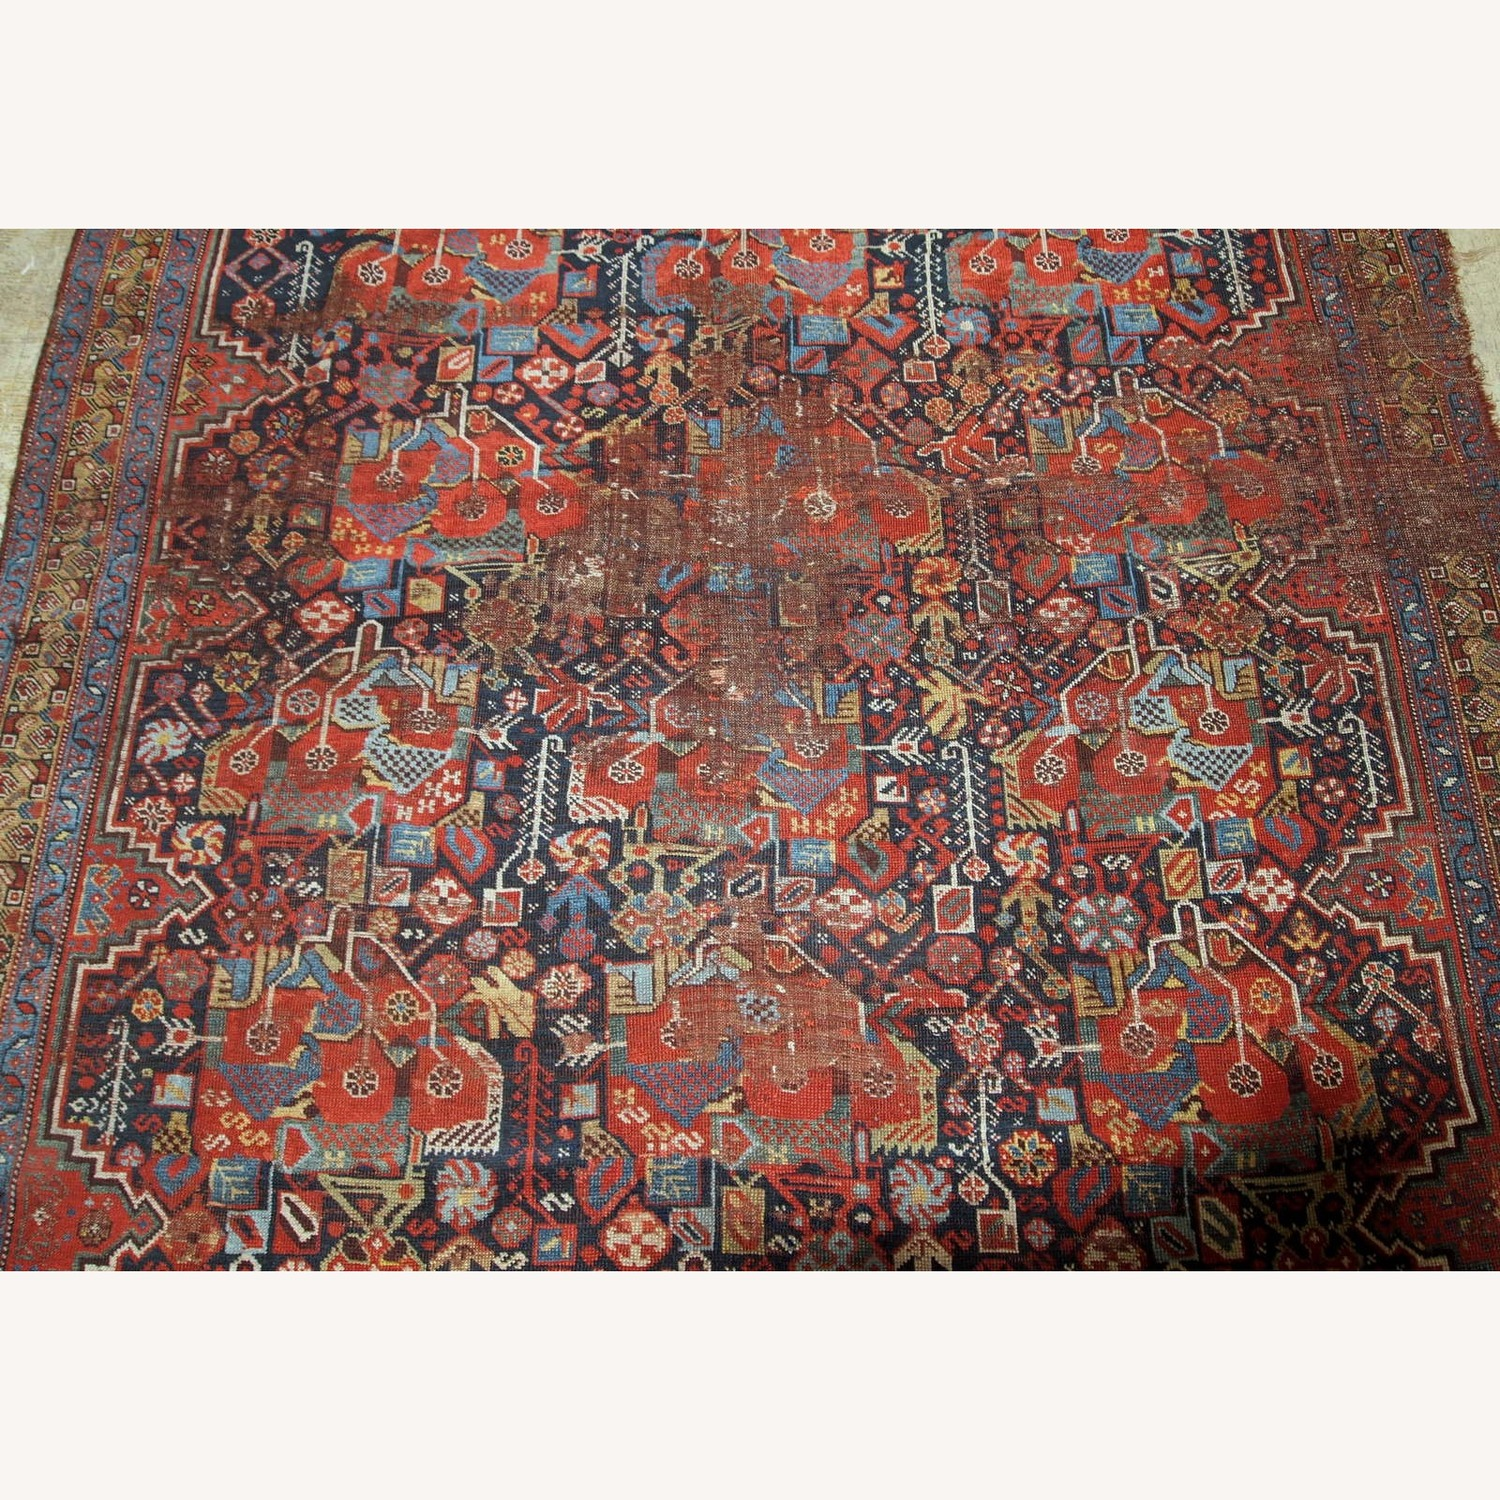 Handmade Antique Collectible Persian Khamseh Rug - image-4